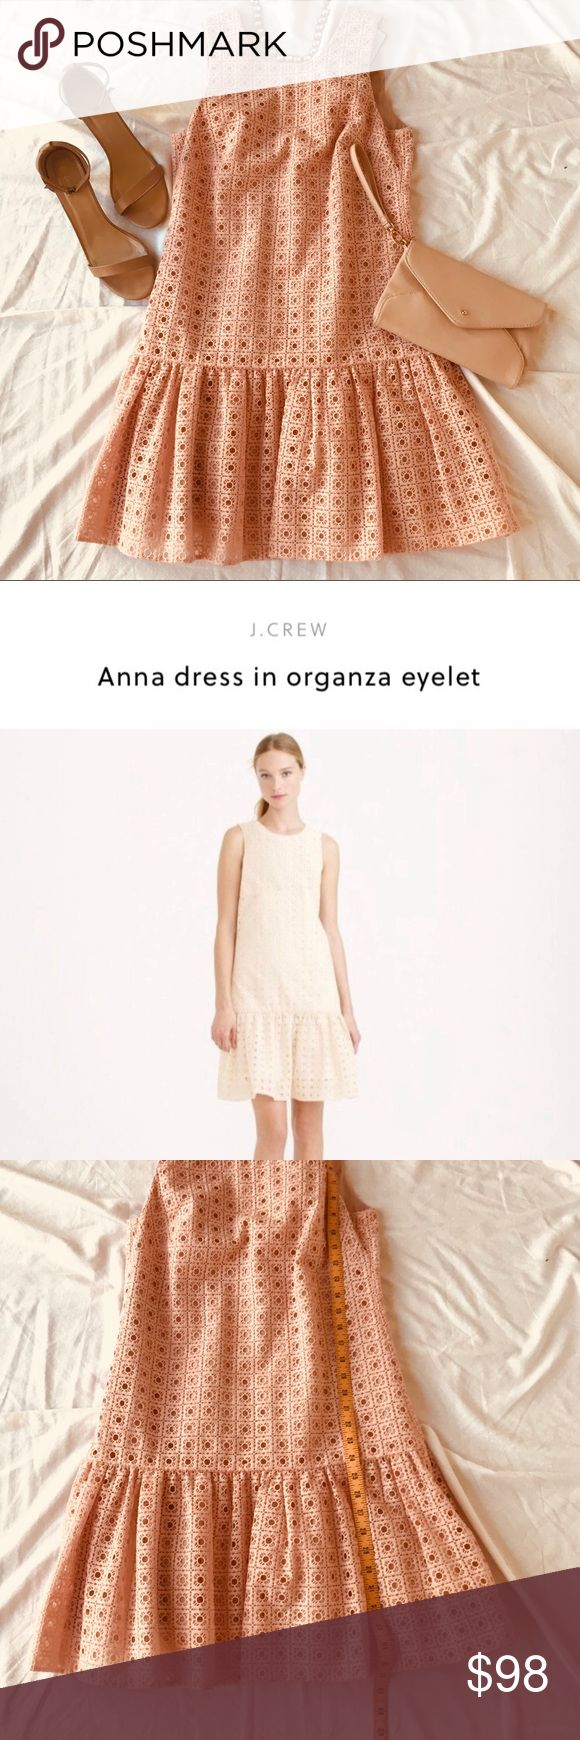 J. Crew Anna Dress in Organza Eyelet J. Crew 'Anna' Dress in organza eyelet. - Brand New with Tags - The J Crew color is 'papaya' which is a light pink/peach.  - Sleeveless and fully lined. - eyelet dress with ruffle skirt from J.Crew Weddings & Parties collection - Perfect for bridesmaid dress, wedding guest dress, brunch dress, date night dress, baby shower dress, or bridal shower dress J. Crew Dresses